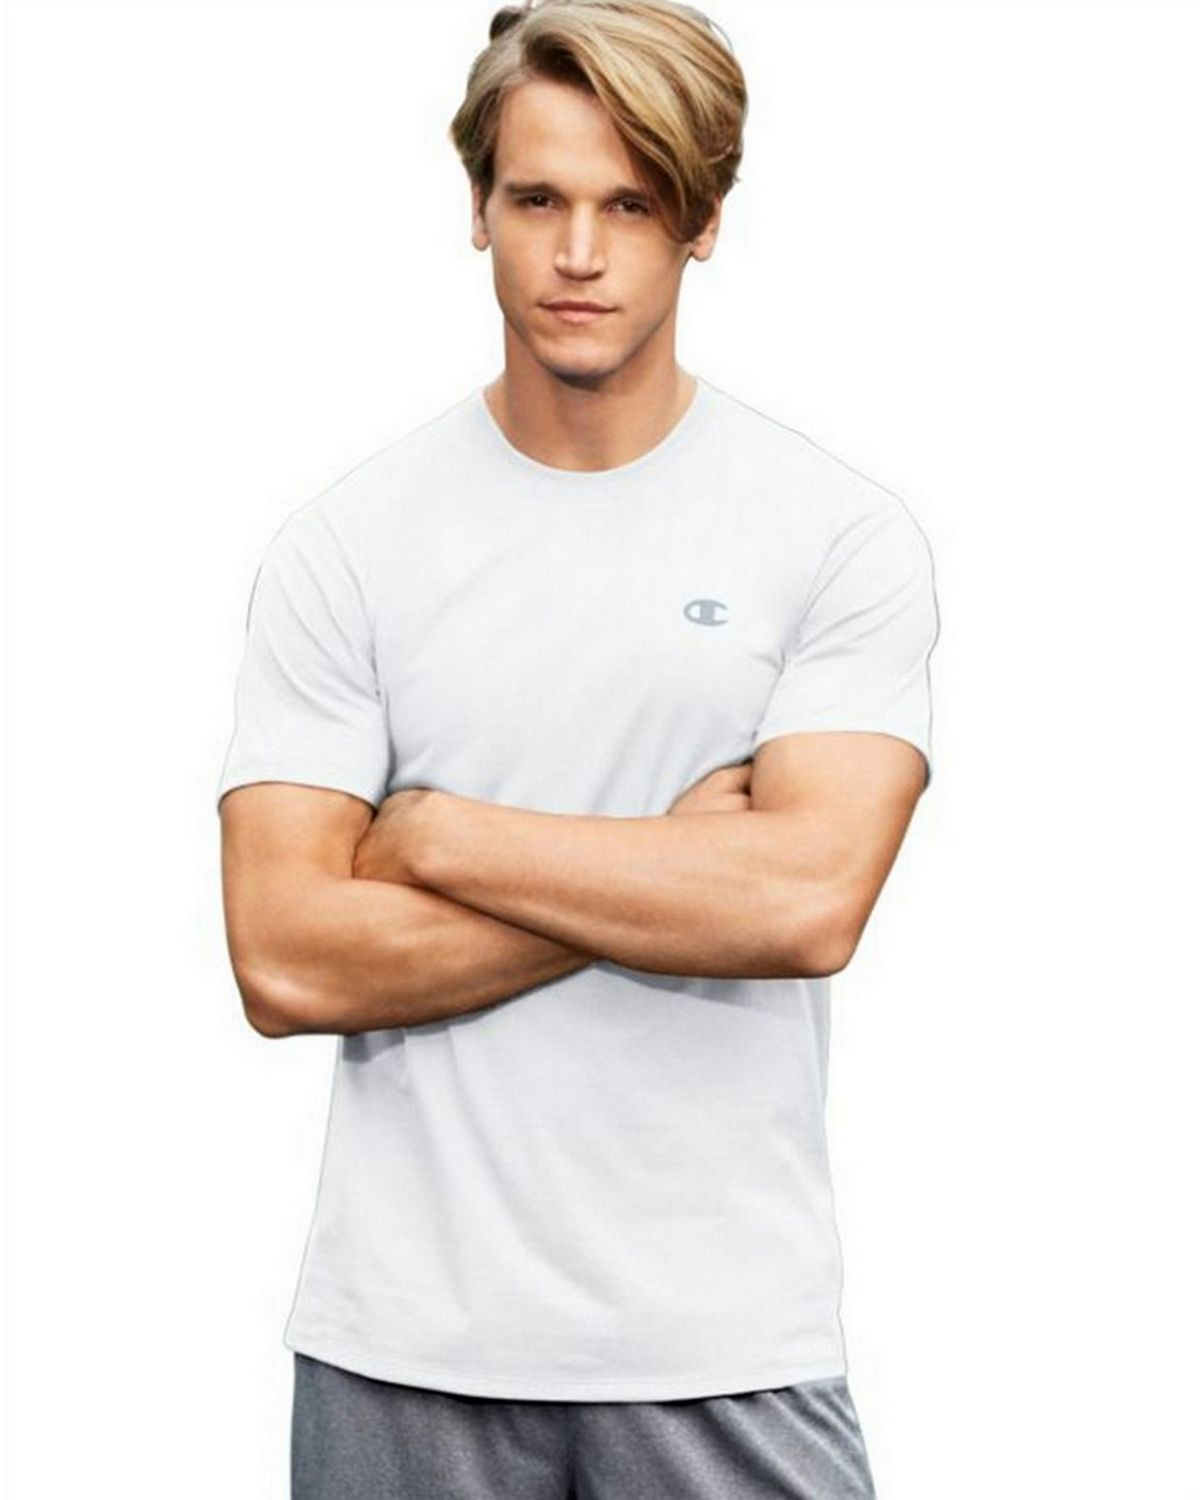 Champion T0351 Vapor Mens Cotton Tee - Chalk White - M T0351